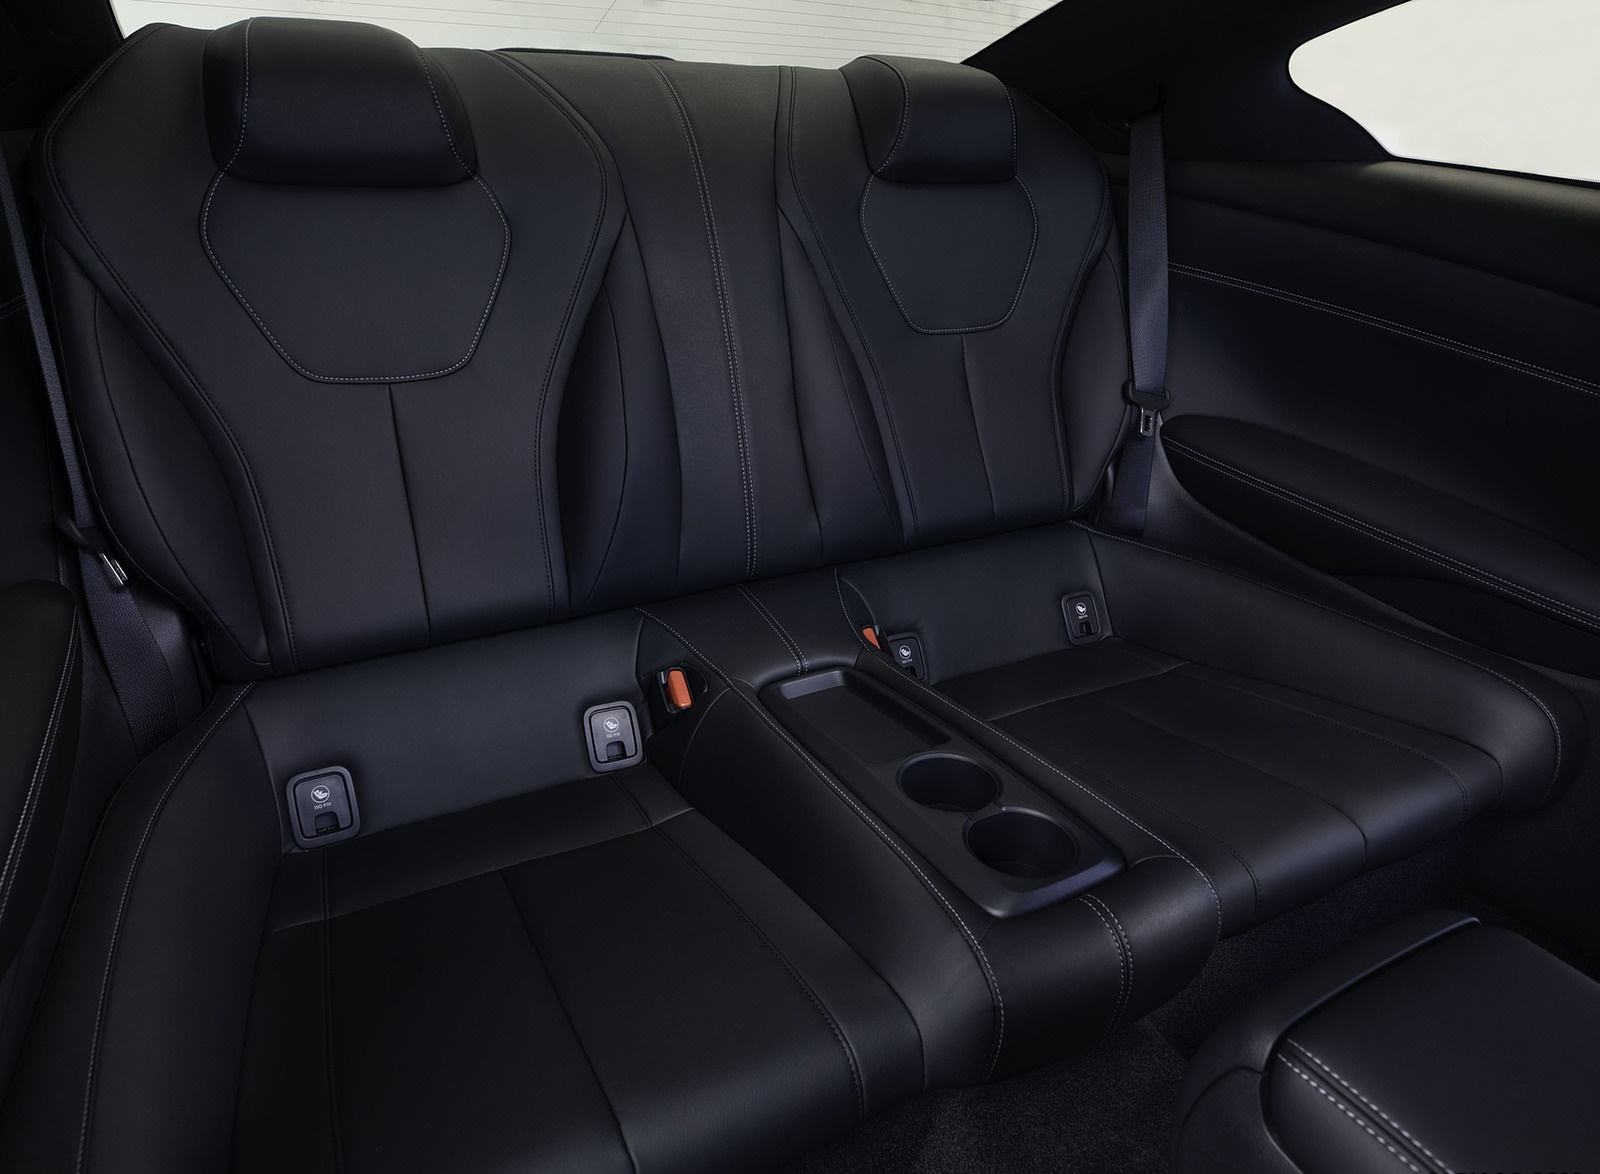 2020 Infiniti Q60 Edition 30 Interior Rear Seats Wallpapers (5)